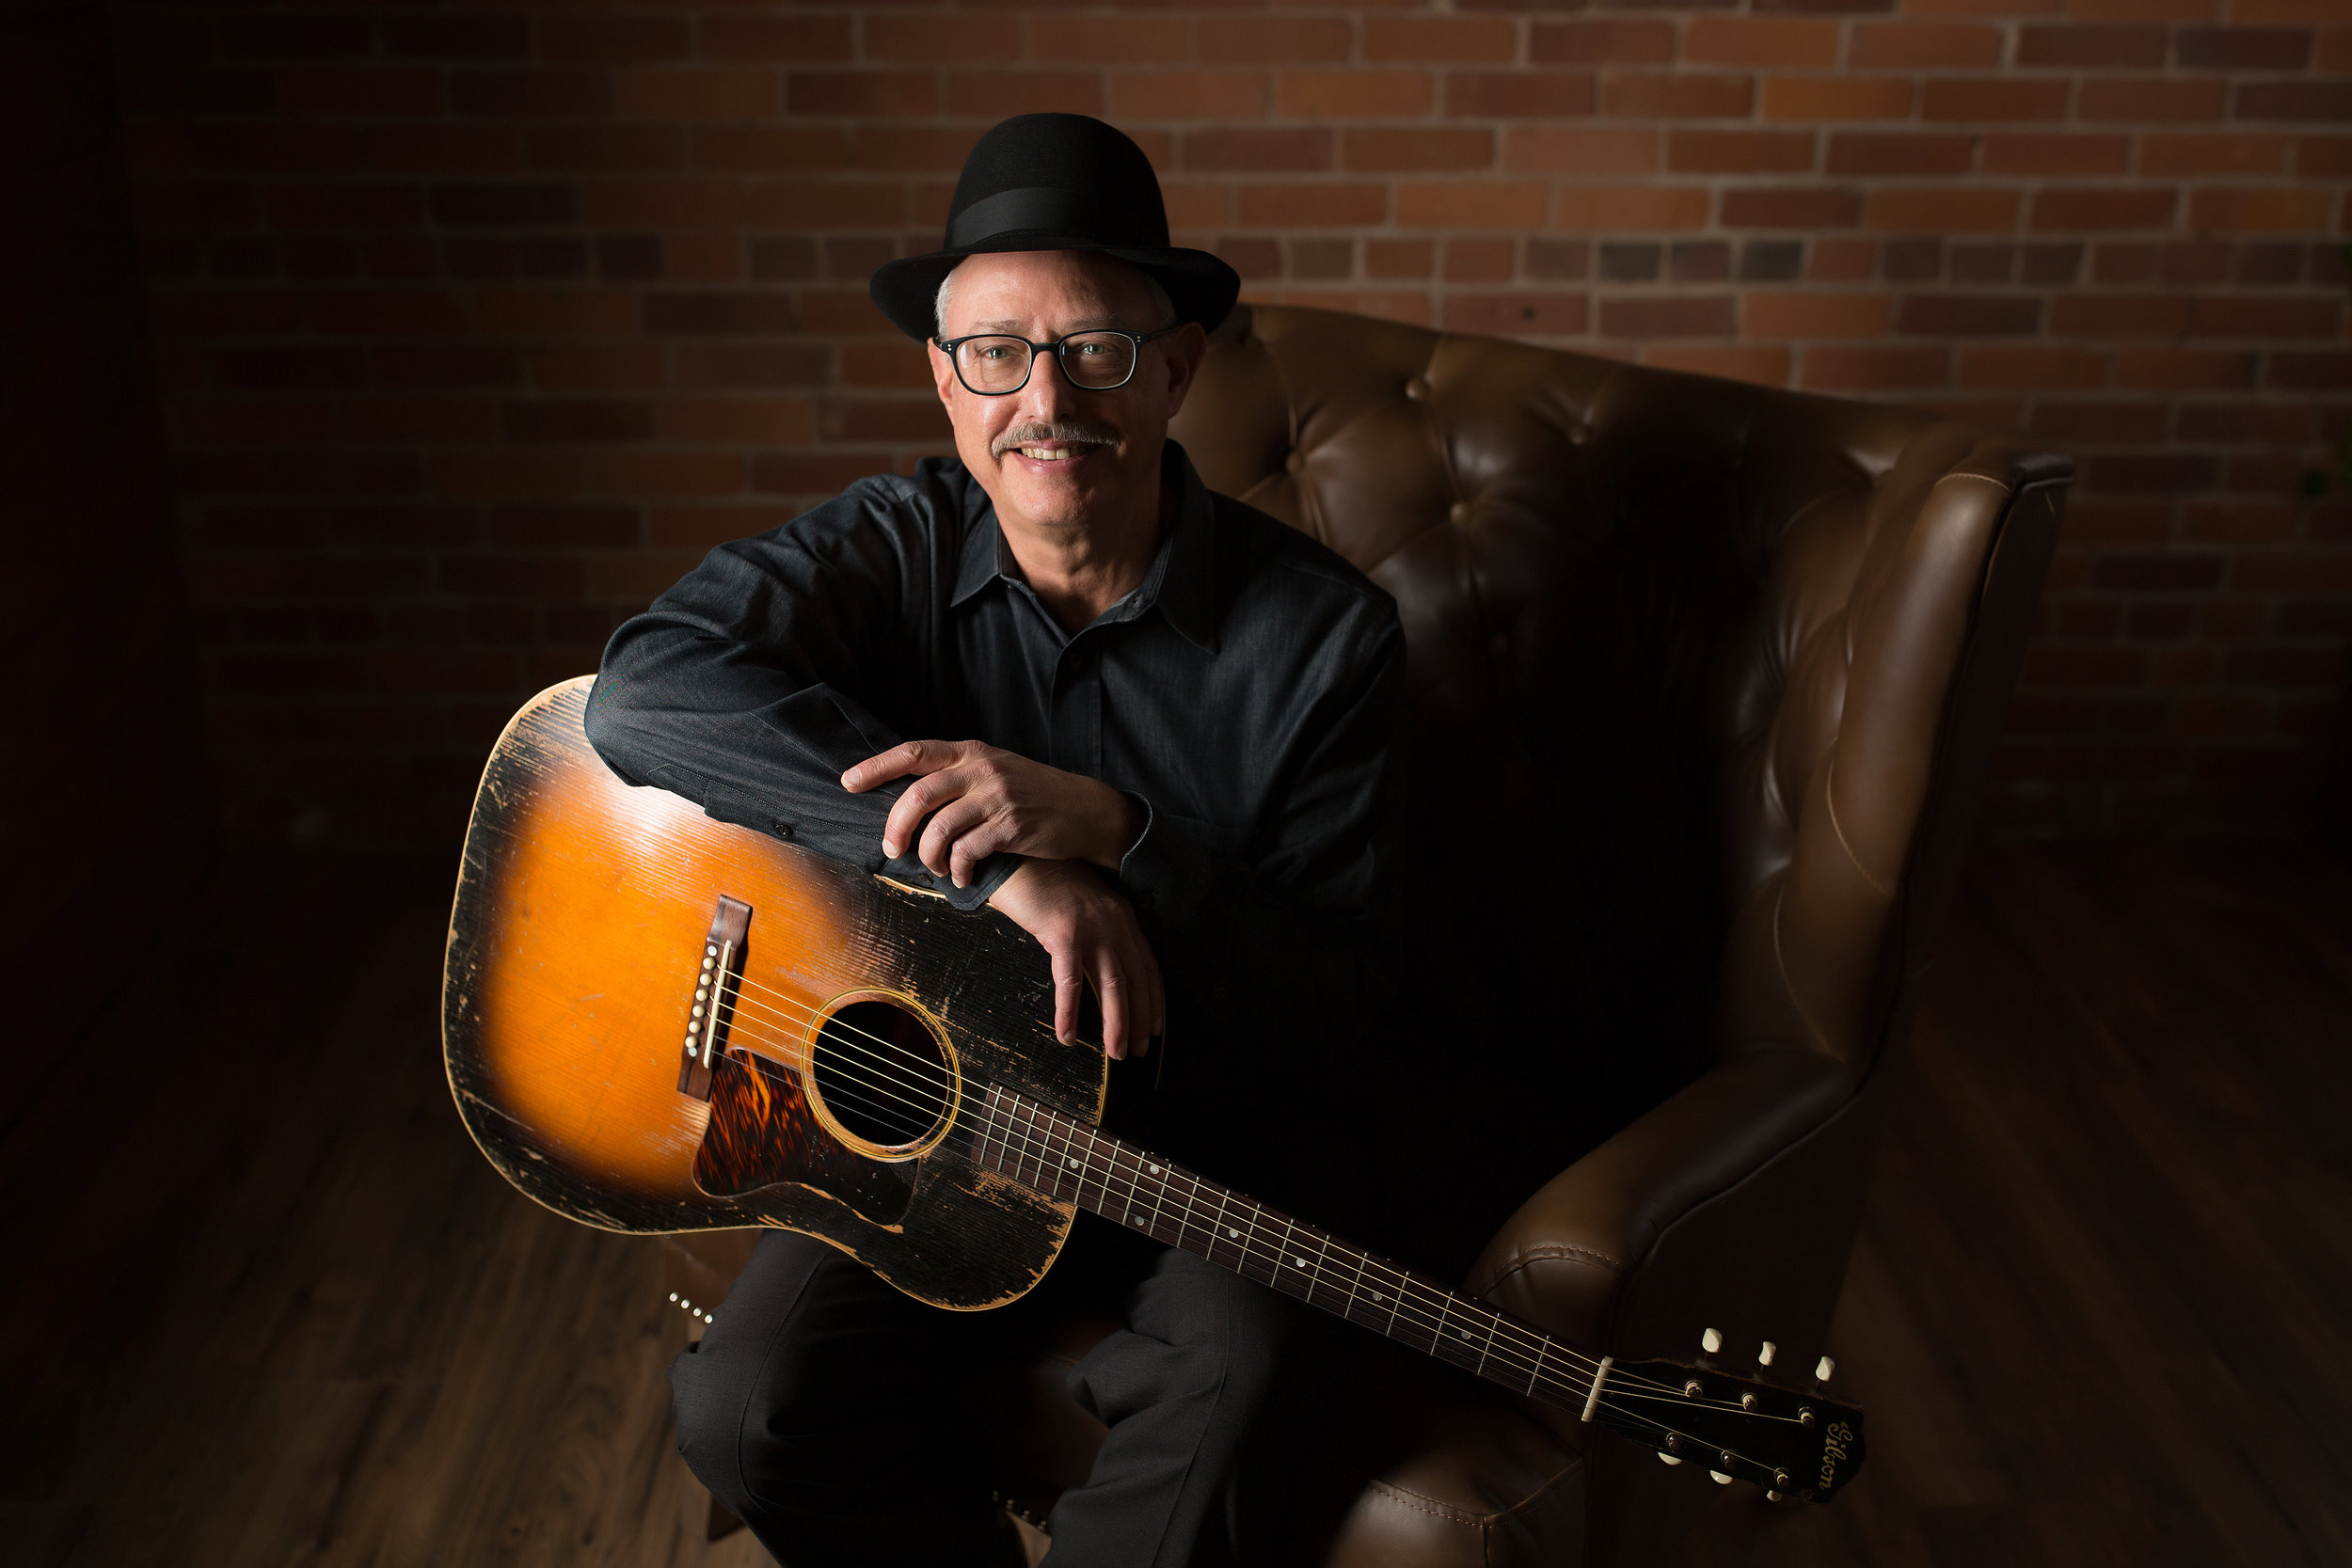 Tom Horsky of Boxborough, a great fingerpicking-style guitarist!